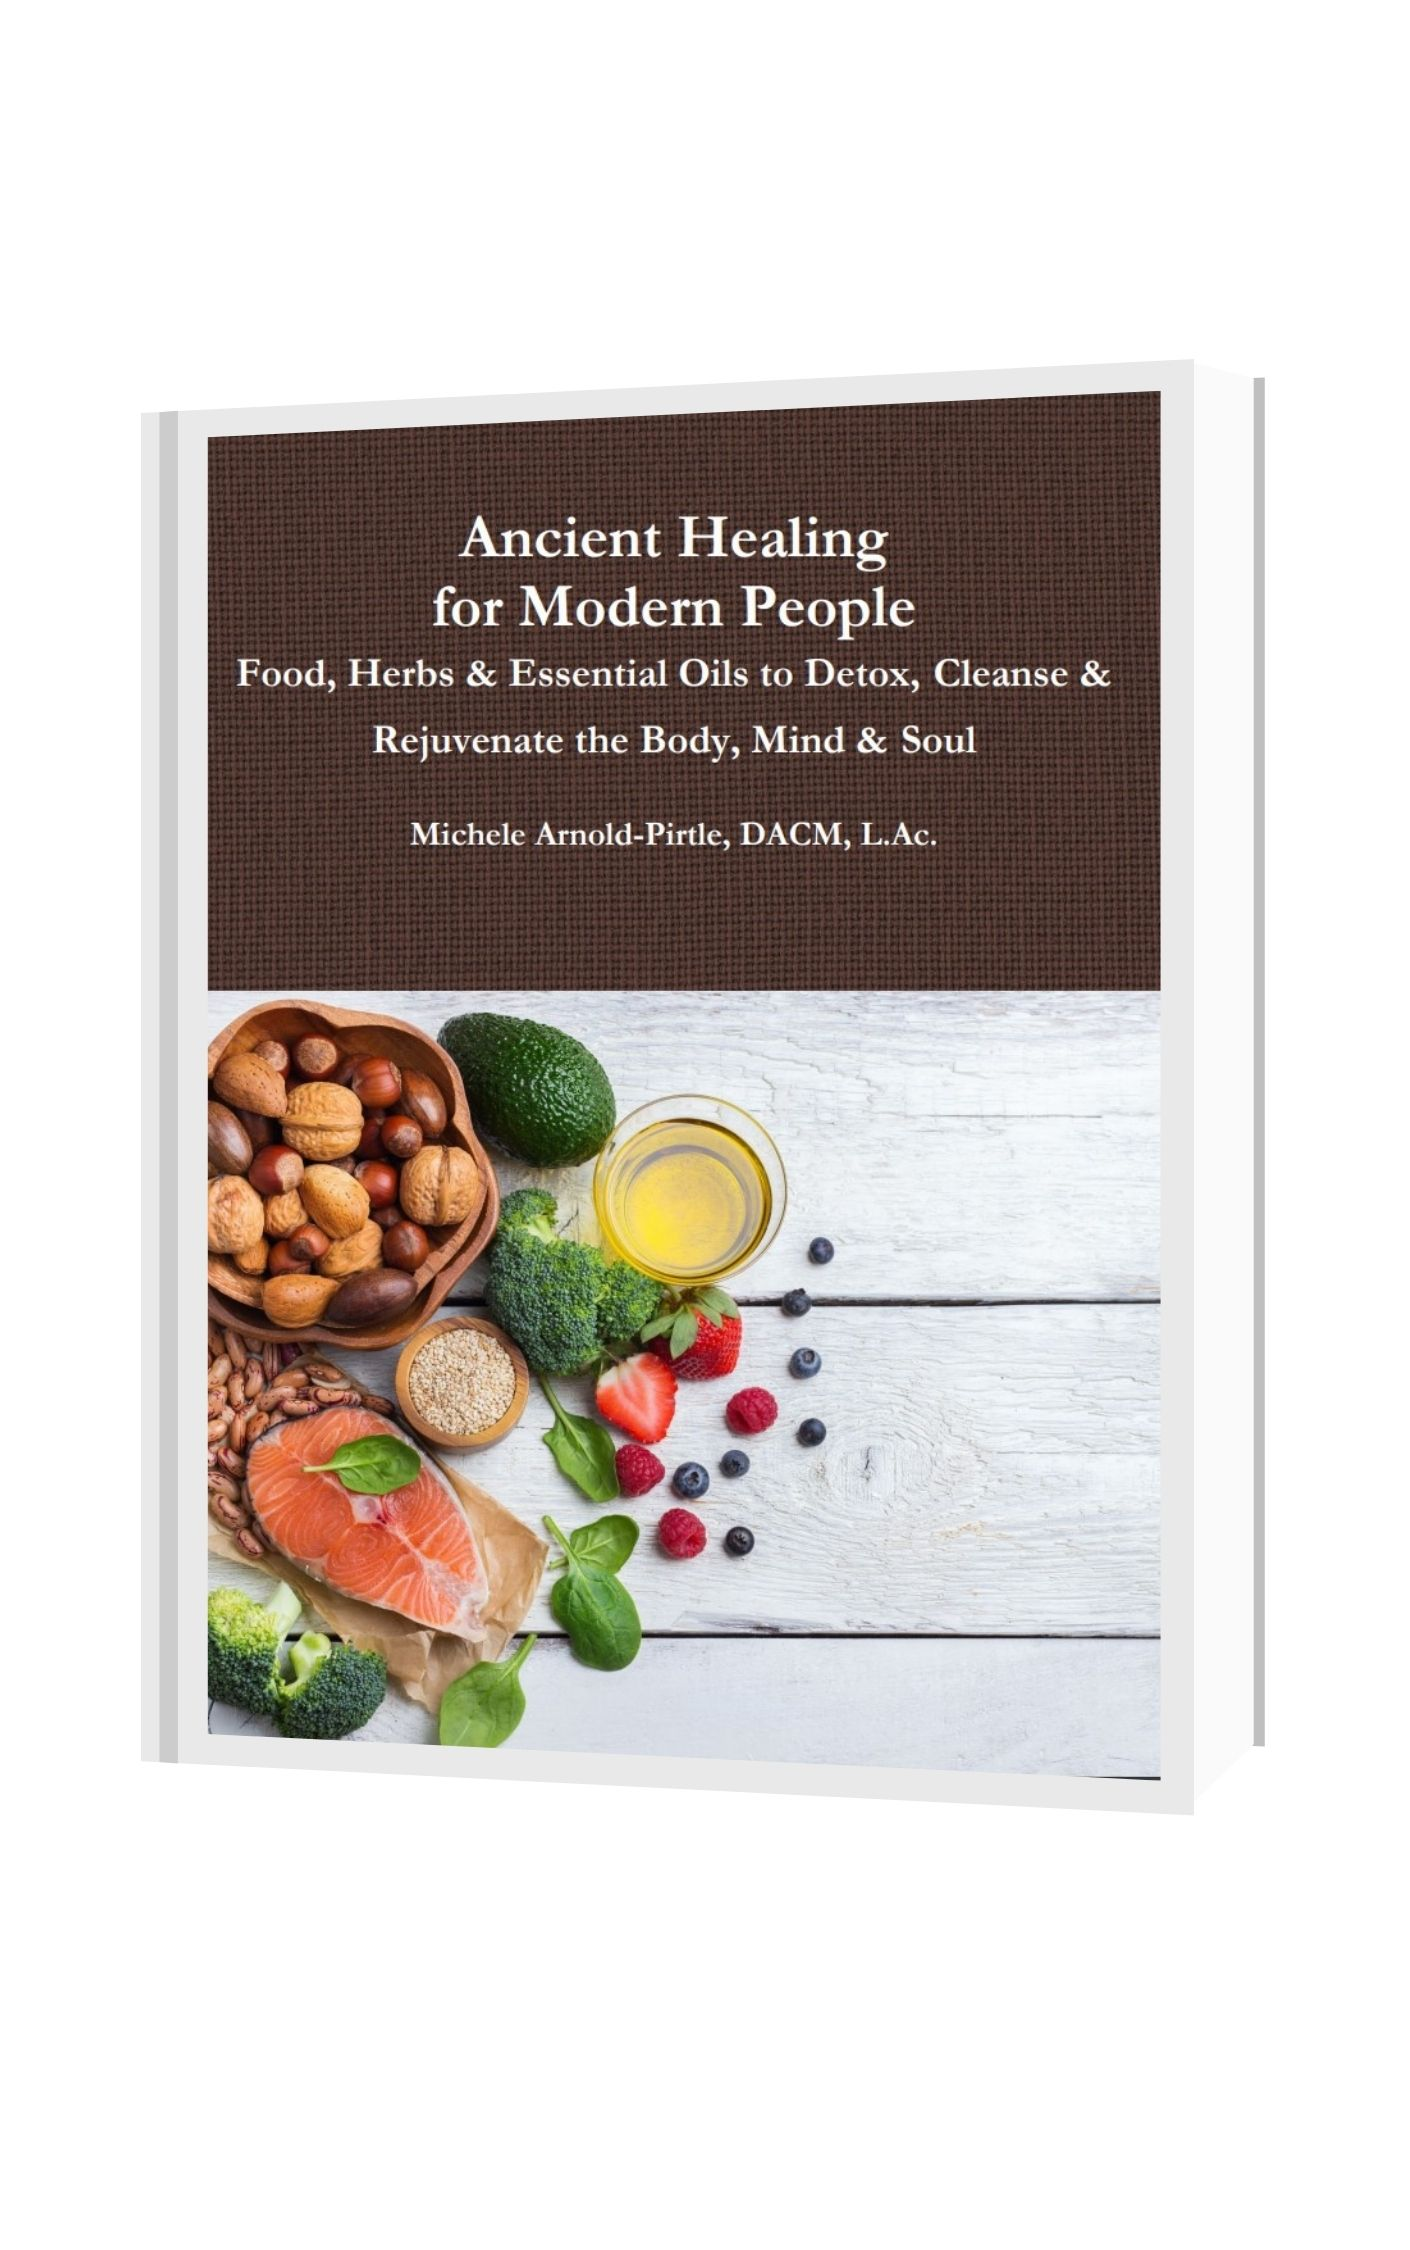 Book image of Ancient Healing for Modern People, Food, Herbs, & Essential Oils